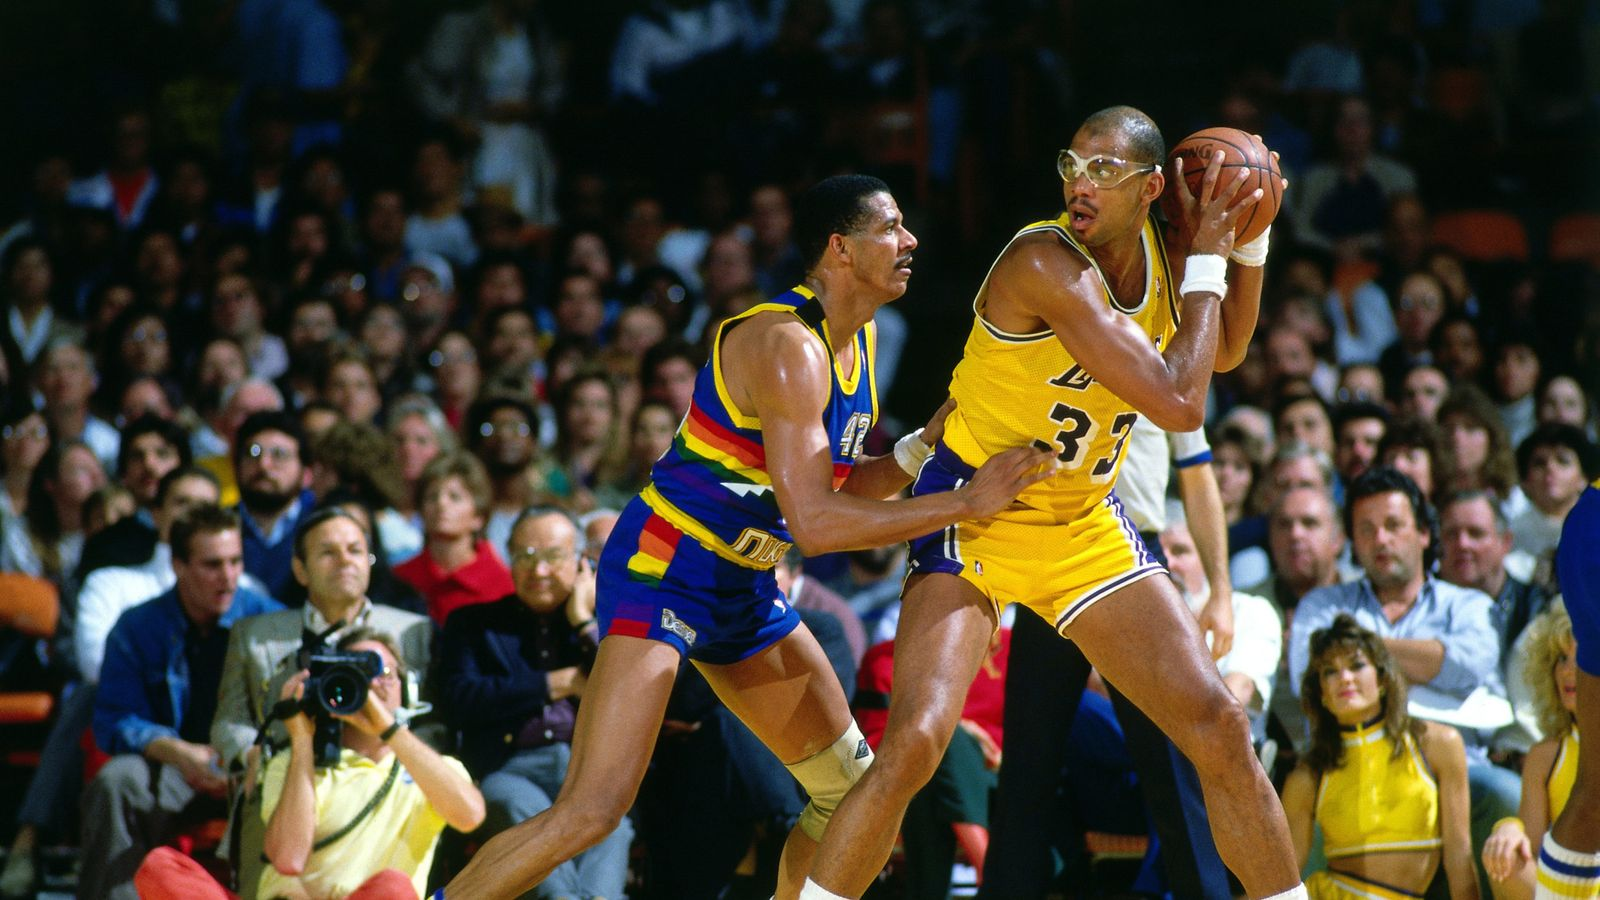 Los Angeles Lakers legend Kareem-Abdul Jabbar auctions four NBA championship rings  NBA News